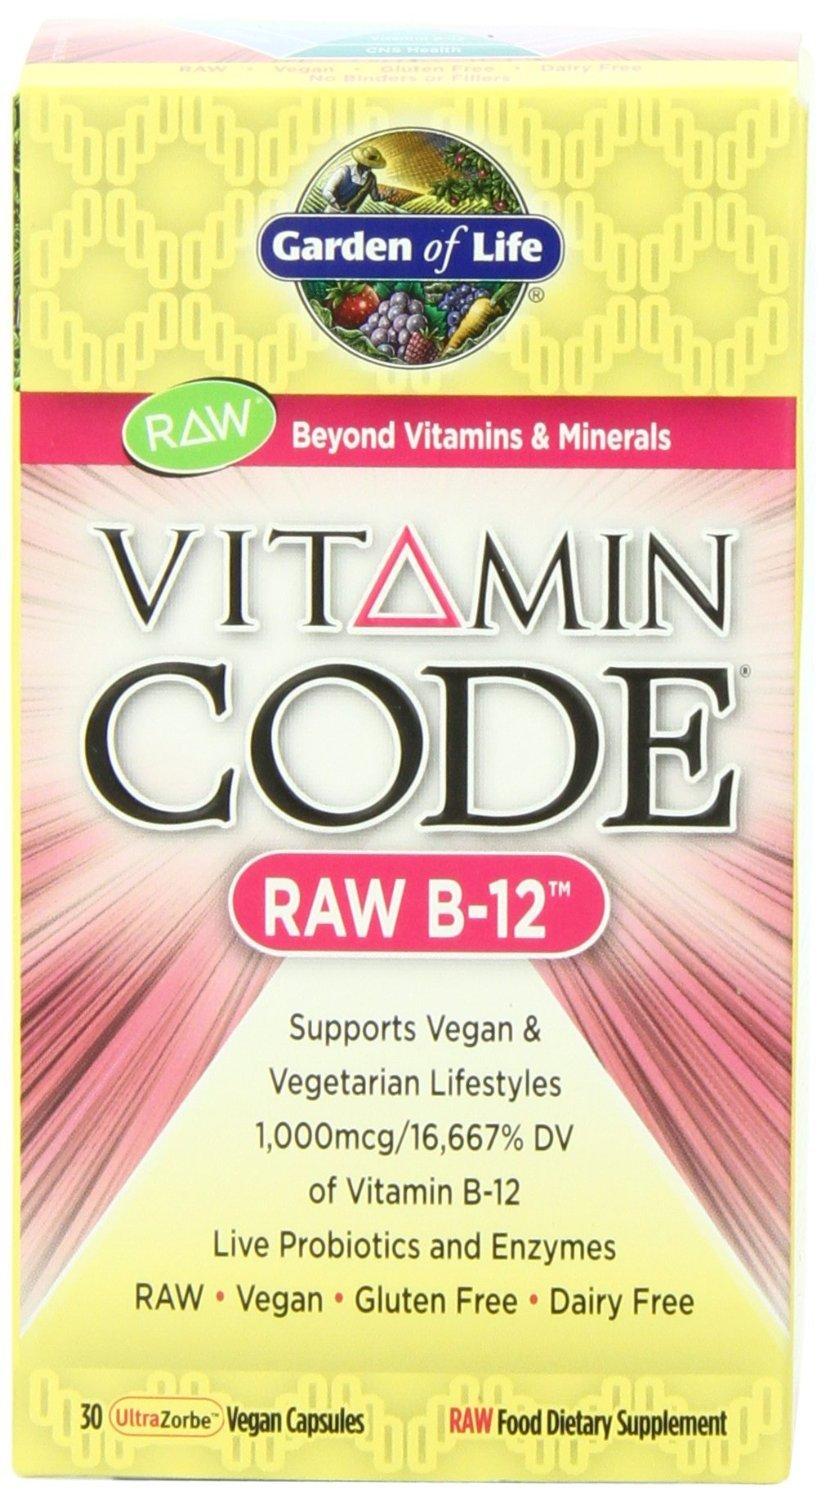 Garden of Life Vitamin Code Raw B-12, 30 Capsules (2-Pack) by garden of life